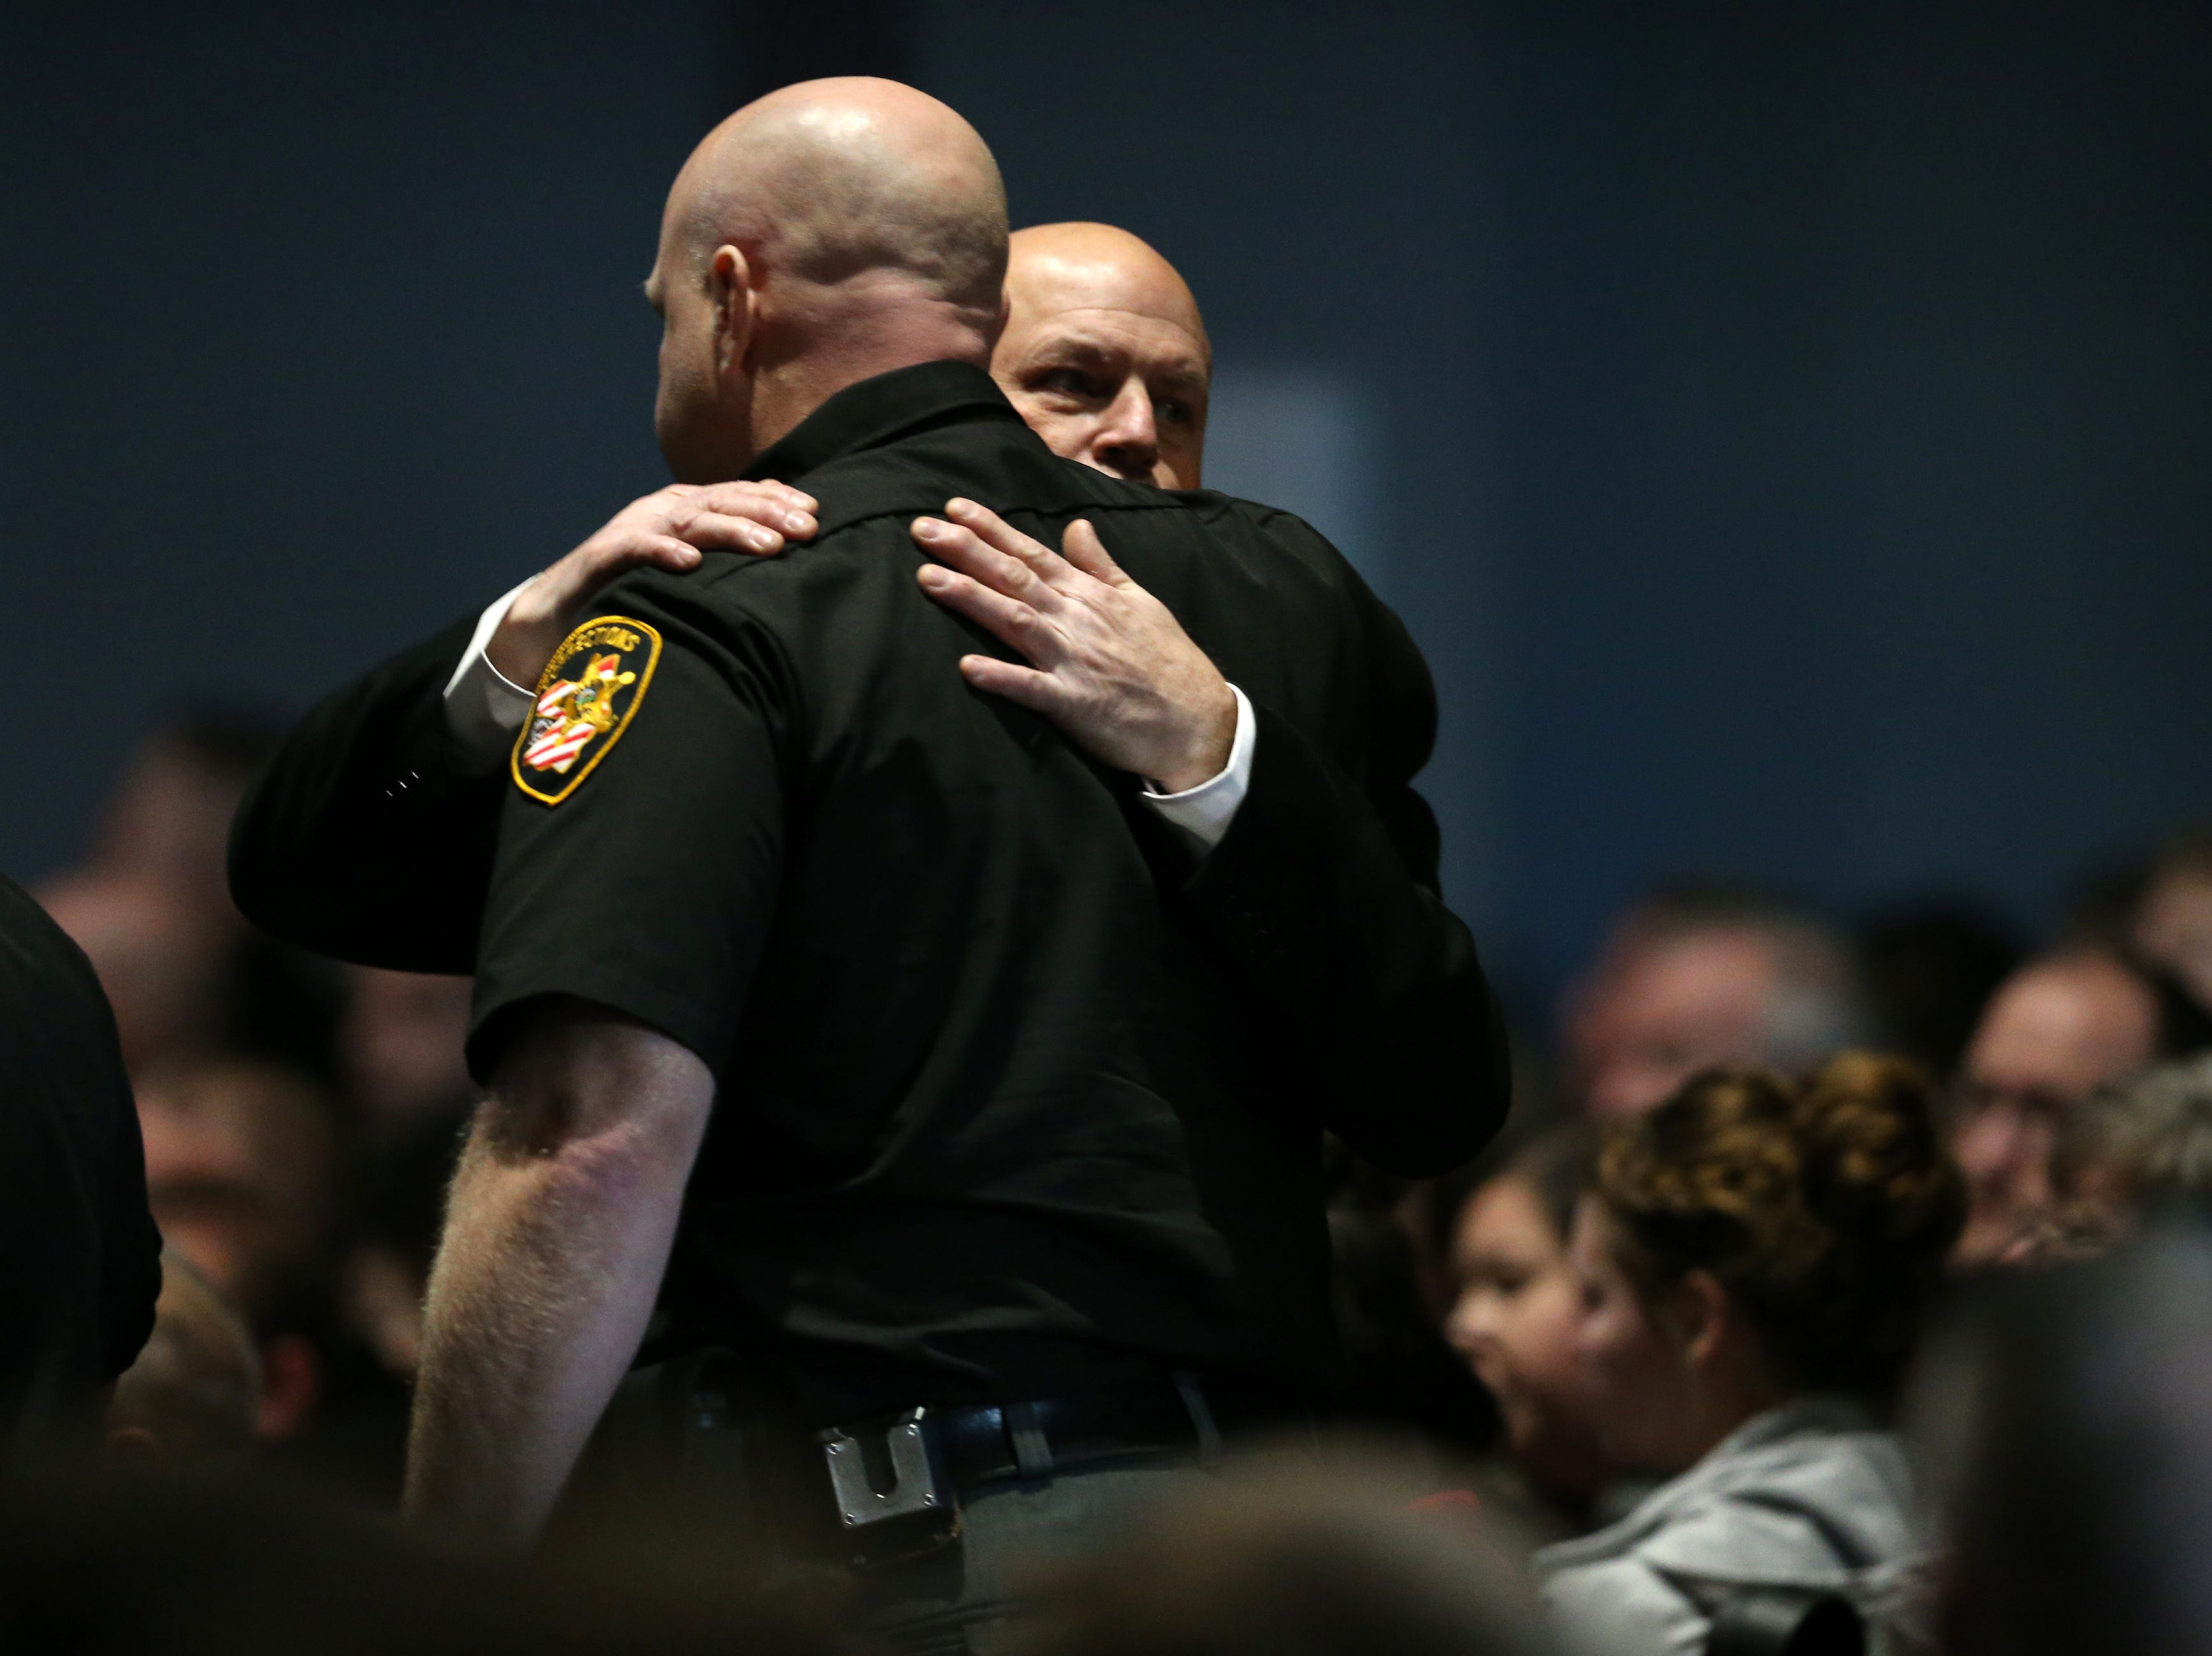 Members of the Clermont County Sheriff's Office embrace as the enter to pay their respects during funeral services for Clermont County Sheriff's Detective William Lee Brewer Jr., Friday, Feb. 8, 2019, at Mount Carmel Christian Church in Union Township, Ohio. Brewer, a 20-year veteran of the Clermont County Sheriff's Office, died in the line of duty. He was shot Feb. 2 during a standoff.